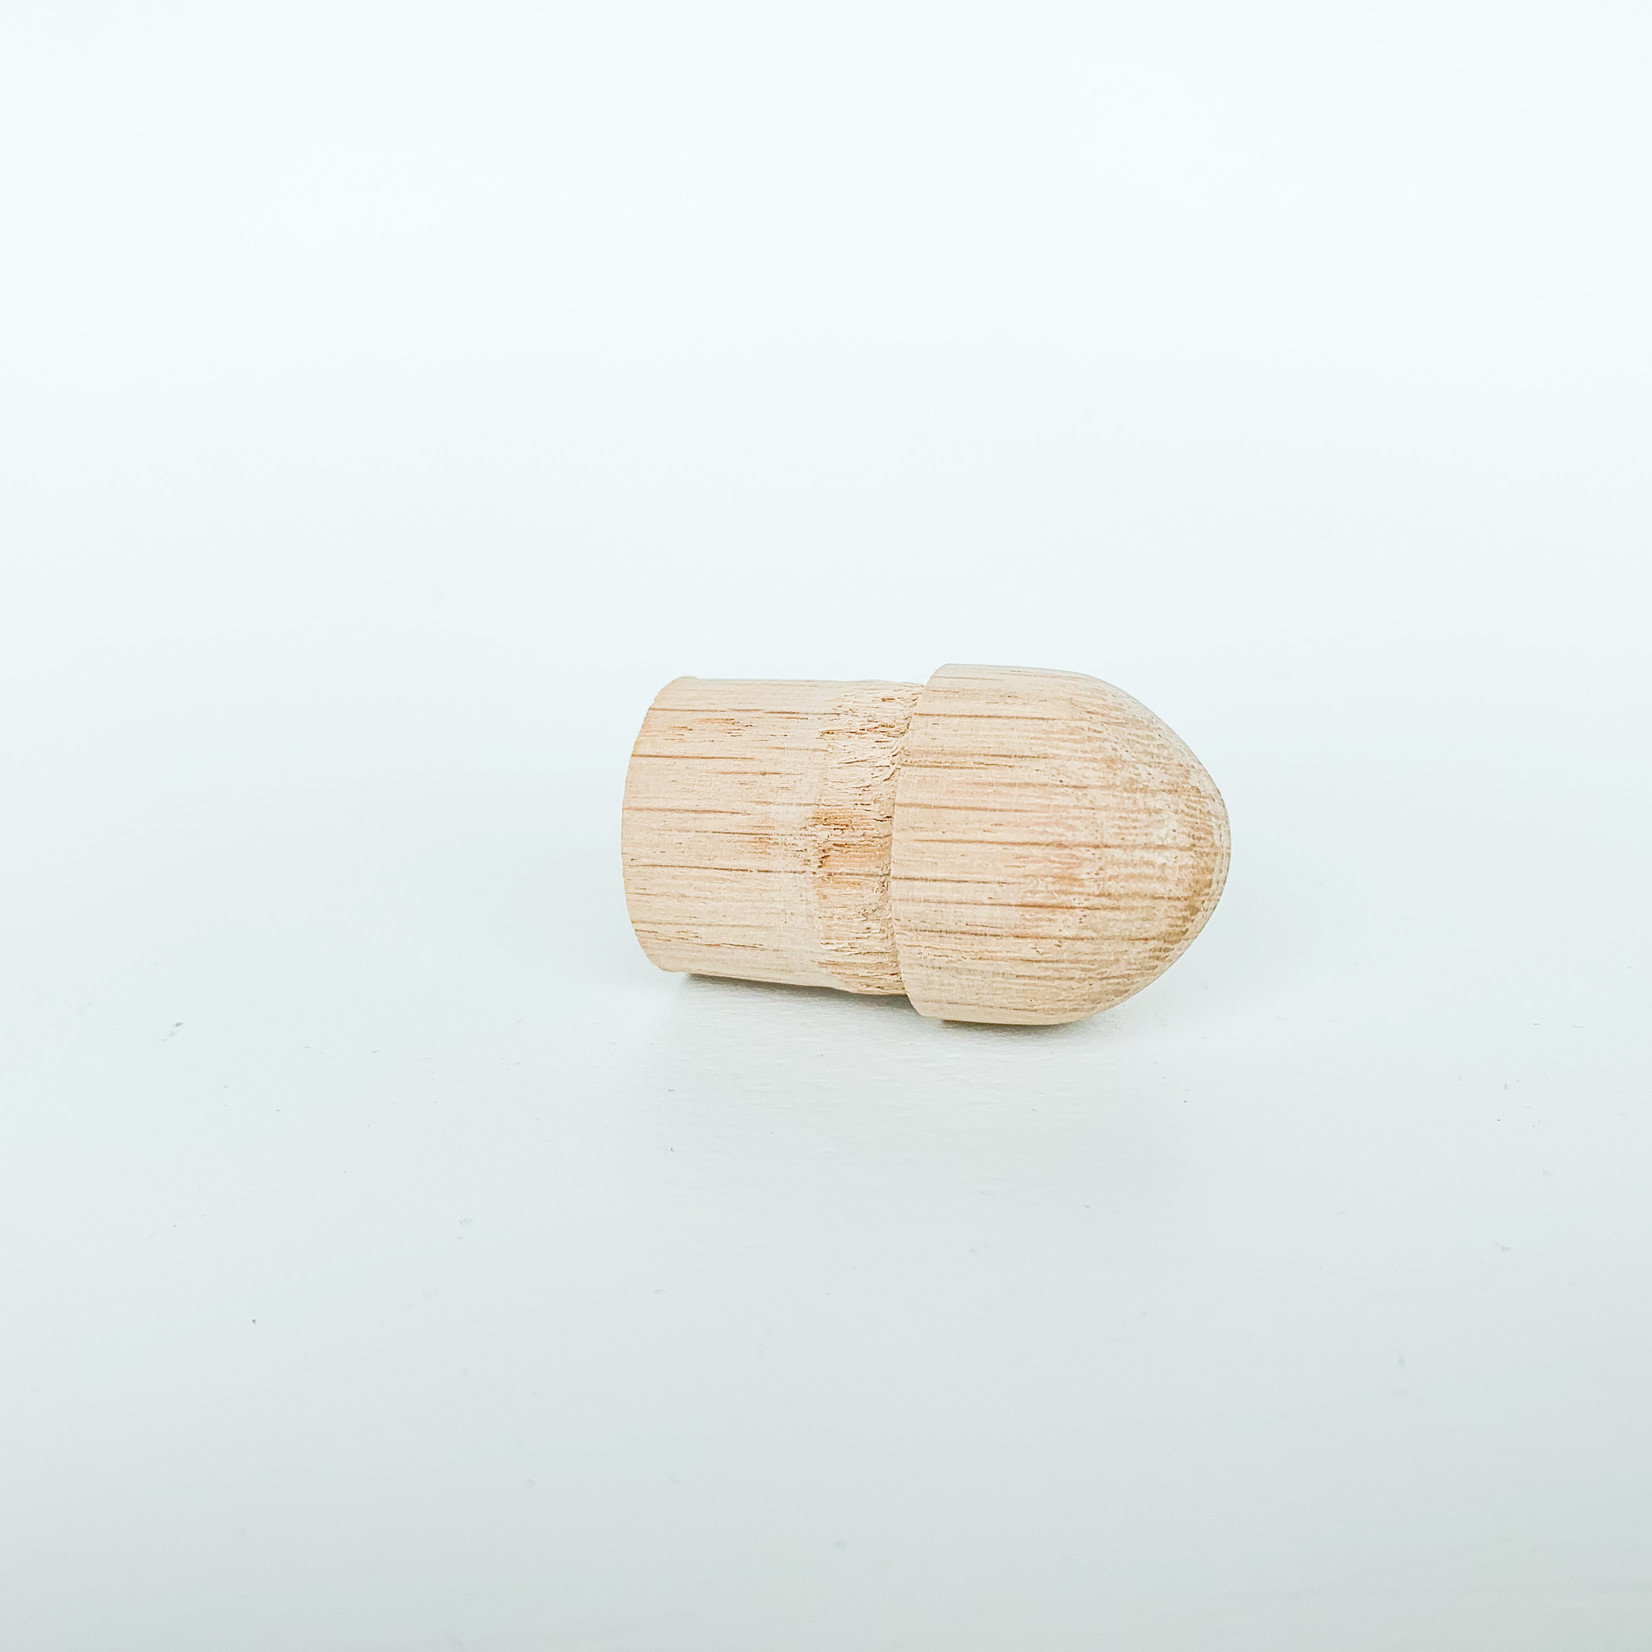 Cheo - wooden ends (4 pieces)